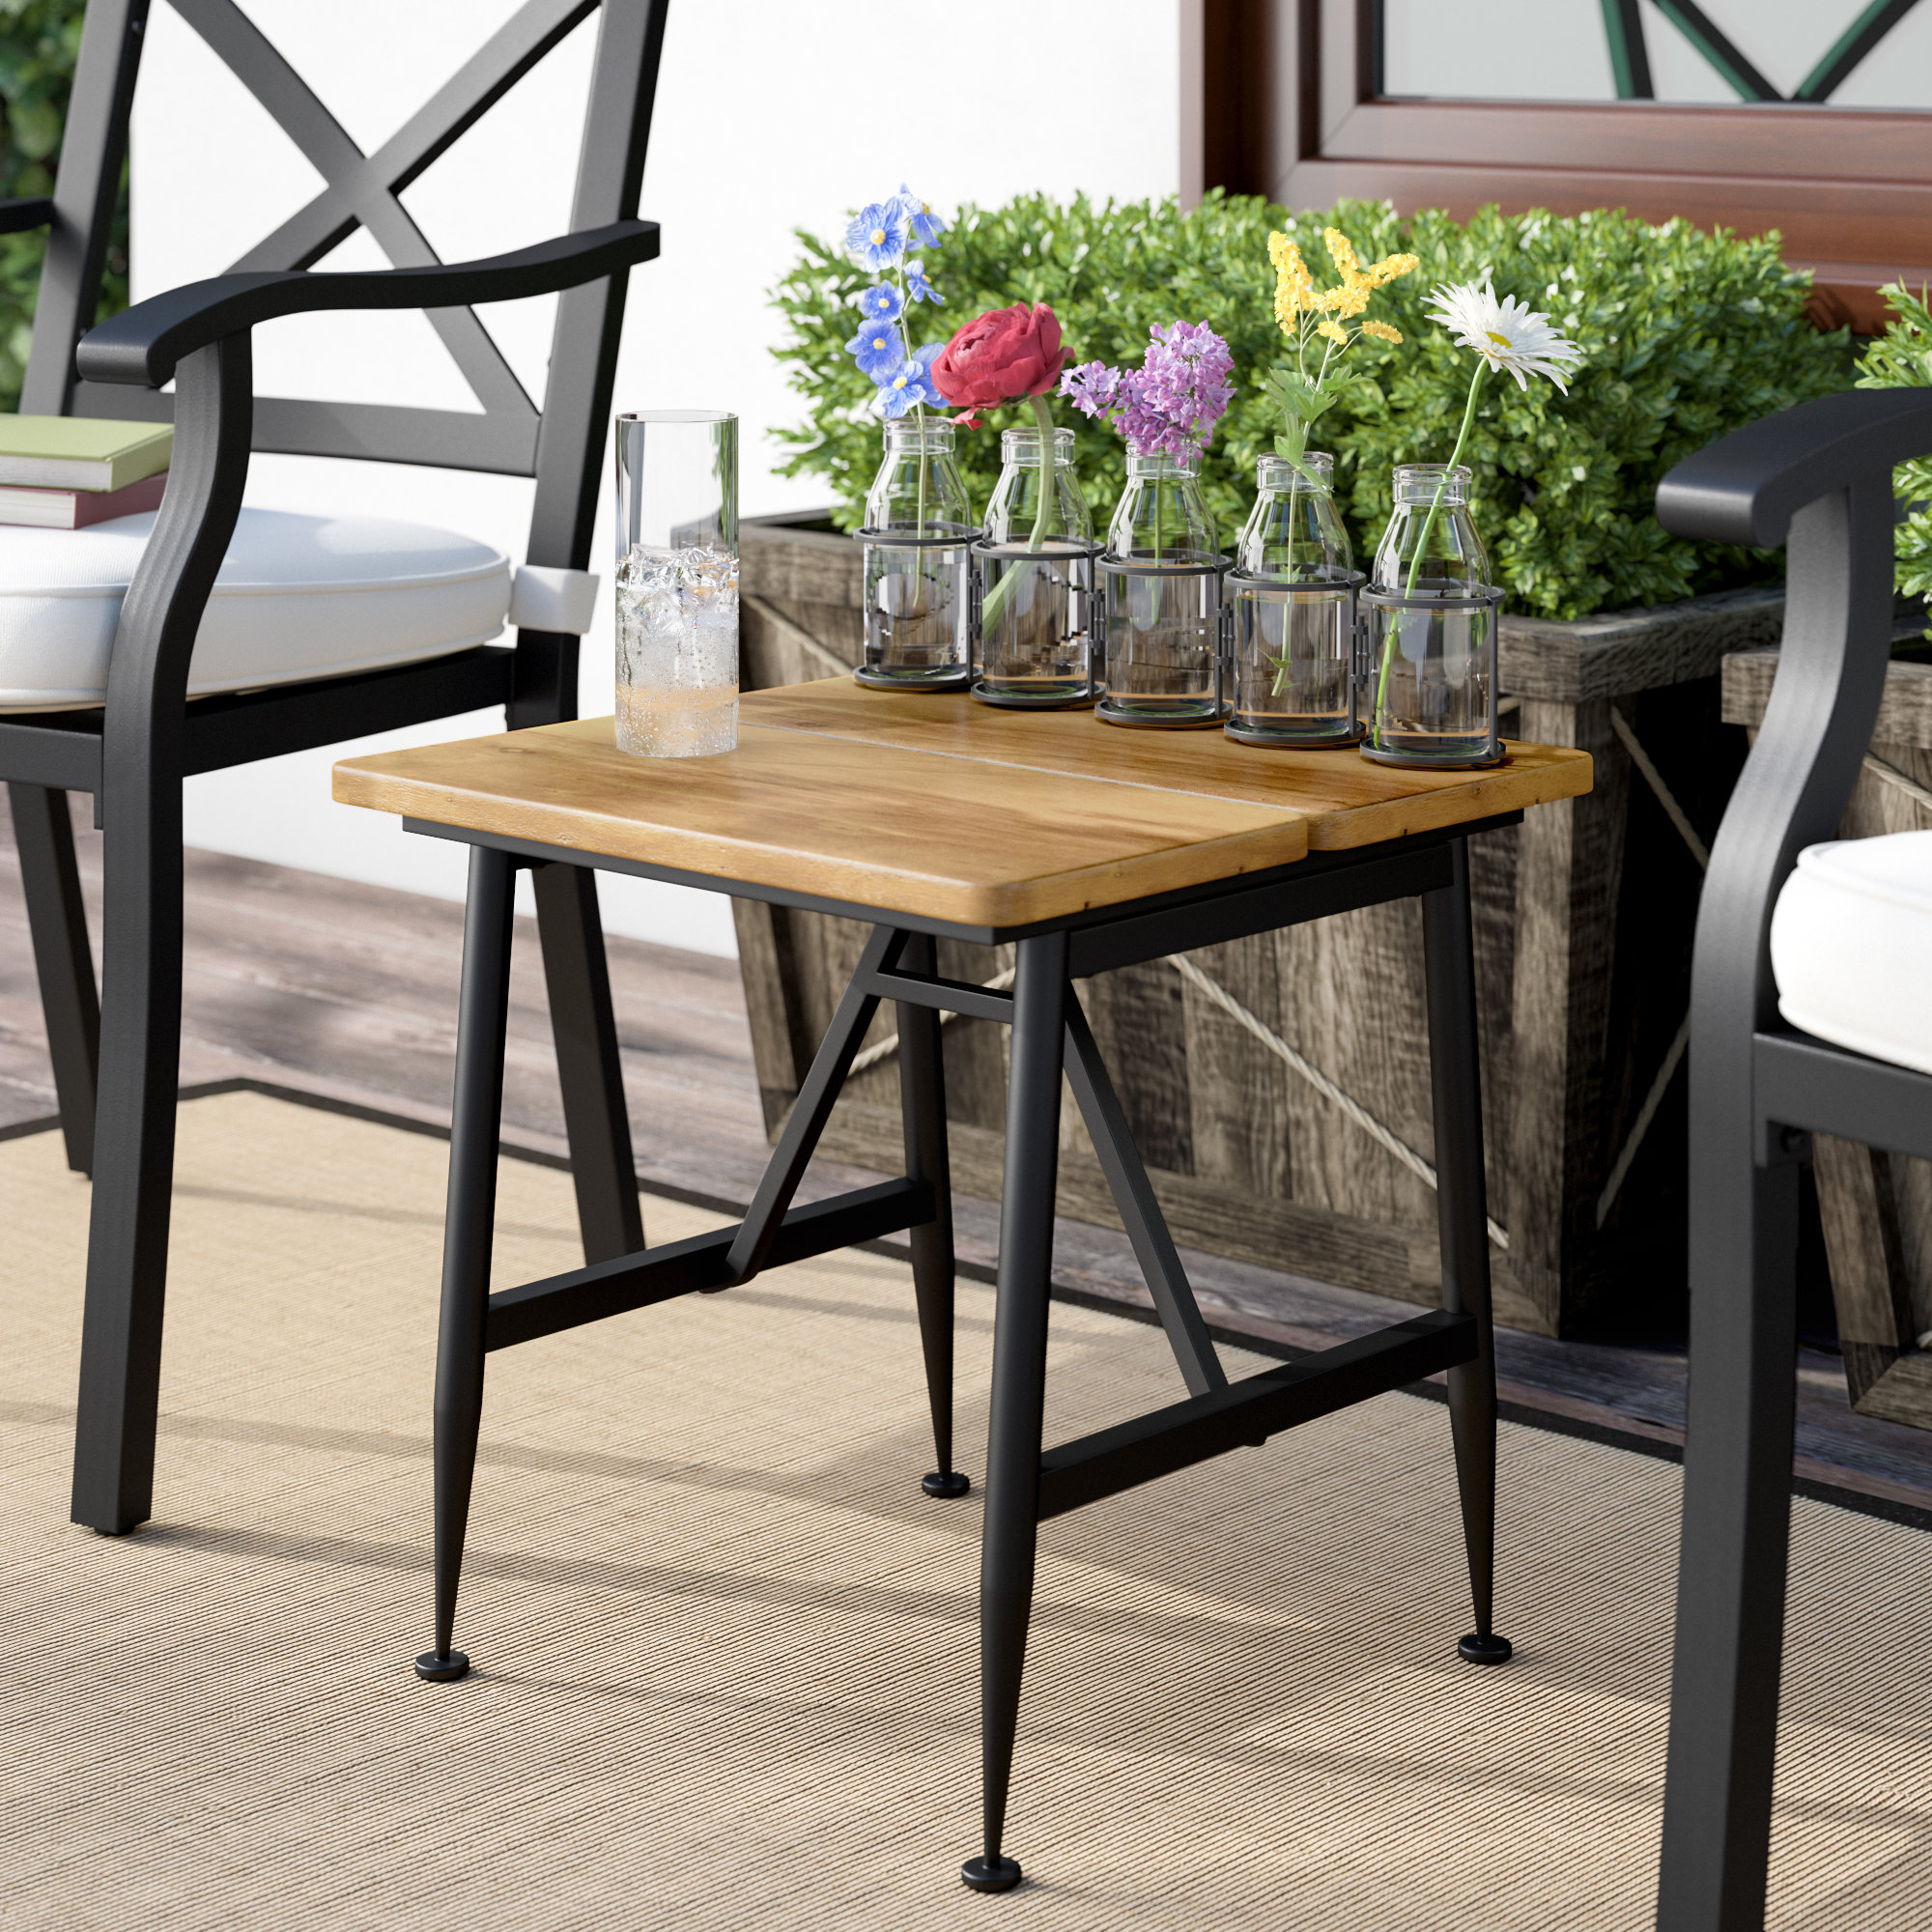 gracie oaks frankston outdoor wood accent table reviews groups small bathroom floor cabinet screw furniture legs study desk nate berkus gold drum throne seat top height console